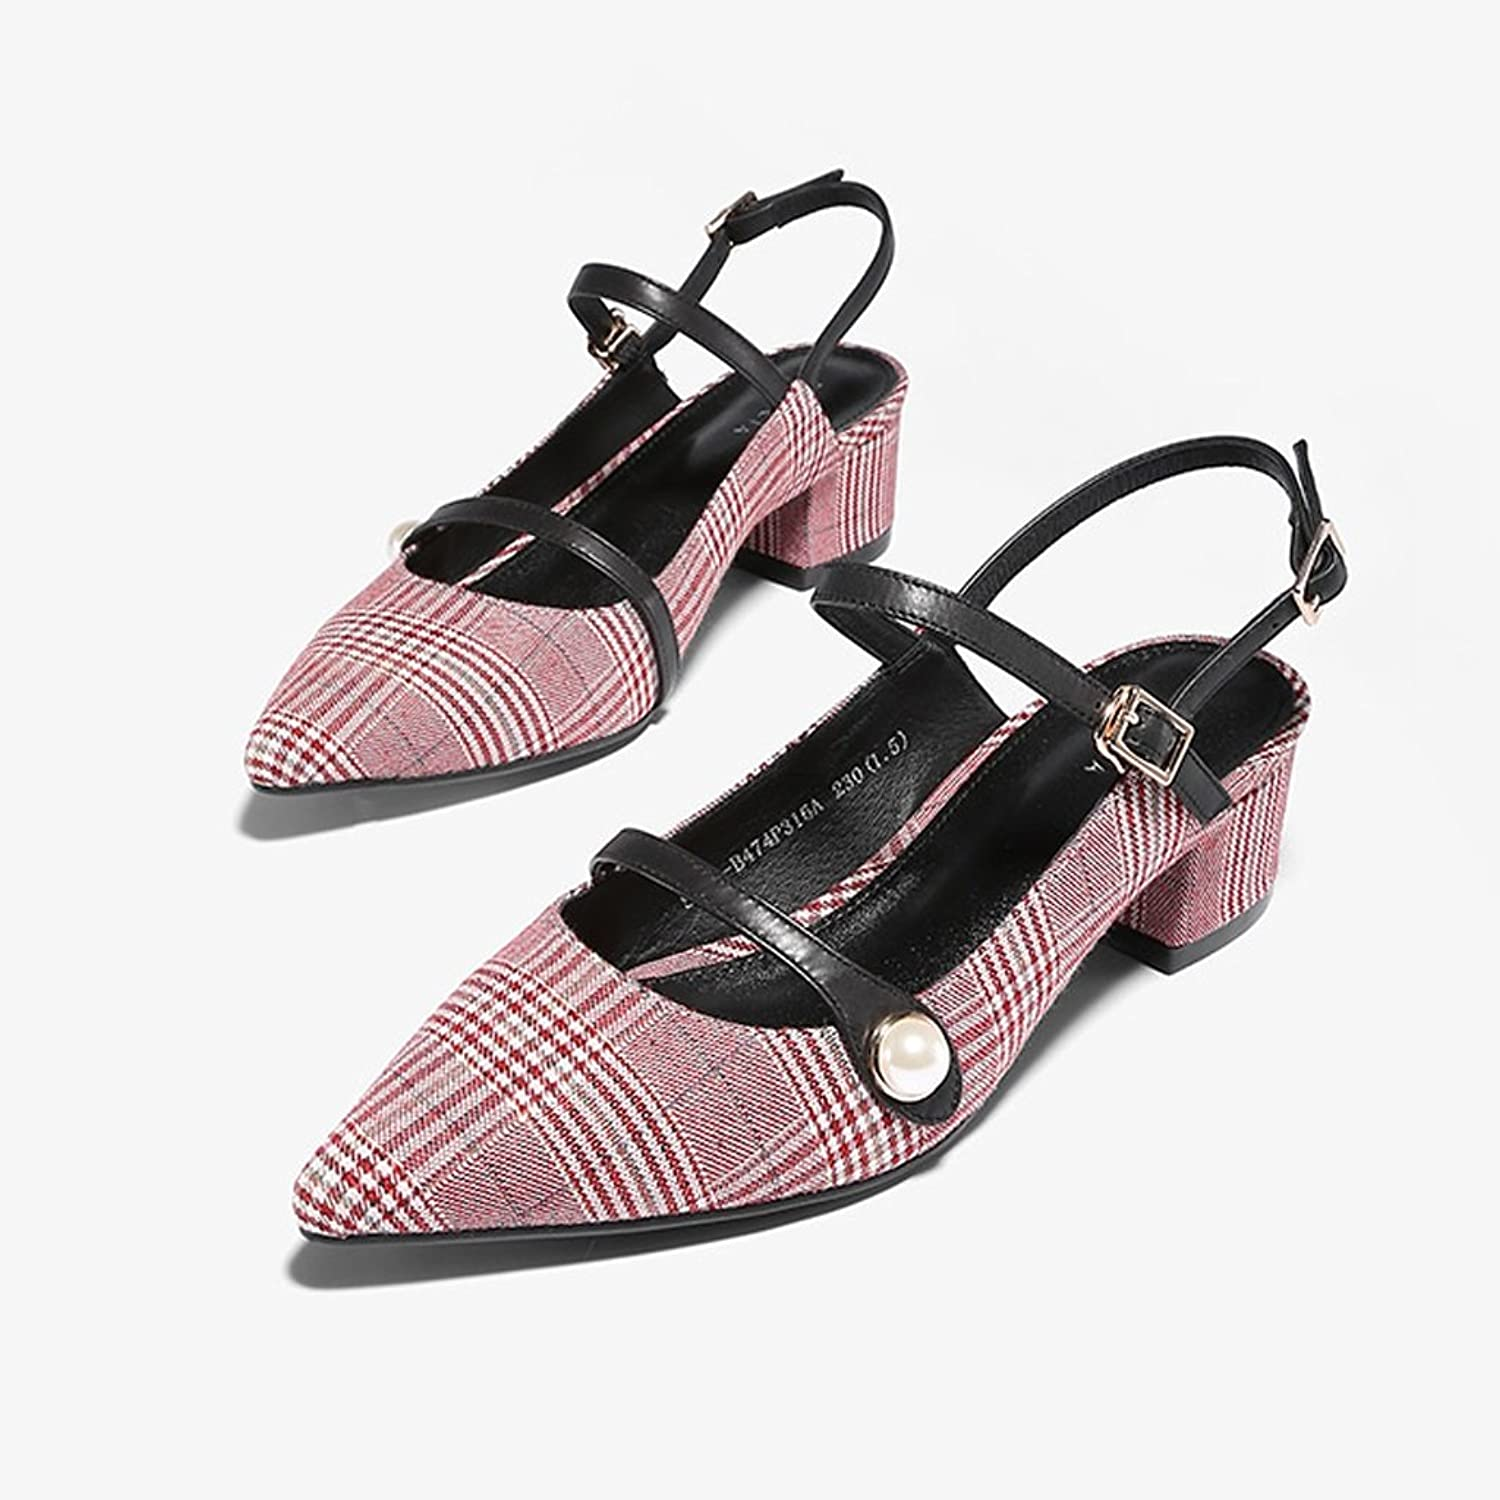 WANGXIAOLIN Sexy Sandals Summer New Word Buckle With Pointed Thick With Women's Sandals ( color   Red , Size   39 )